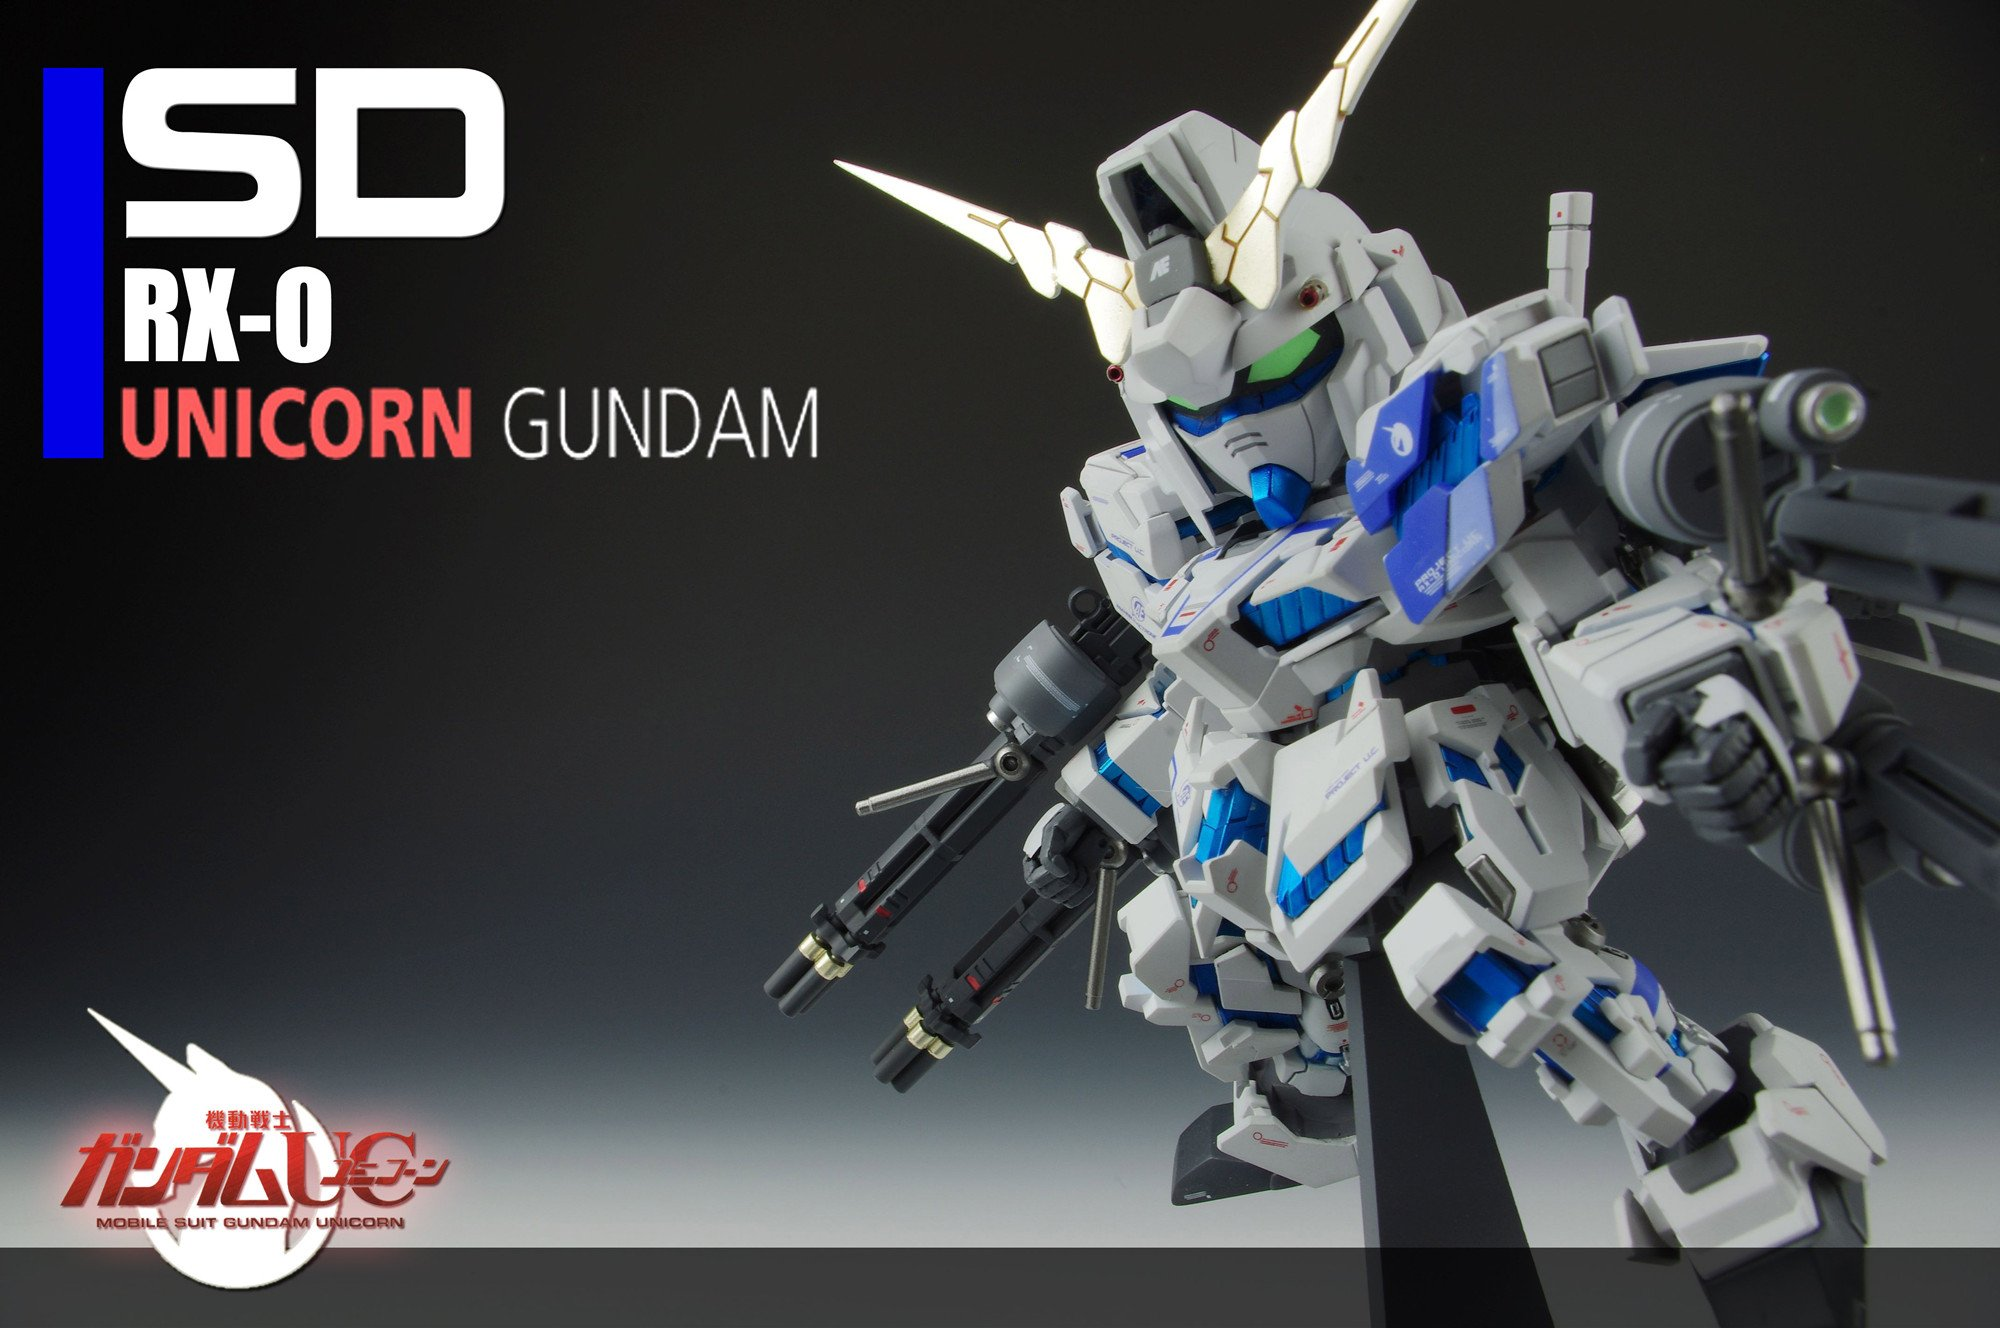 SD RX 0 Unicorn Gundam No10 Xtreme Wallpaper Size Images Link 2000x1328